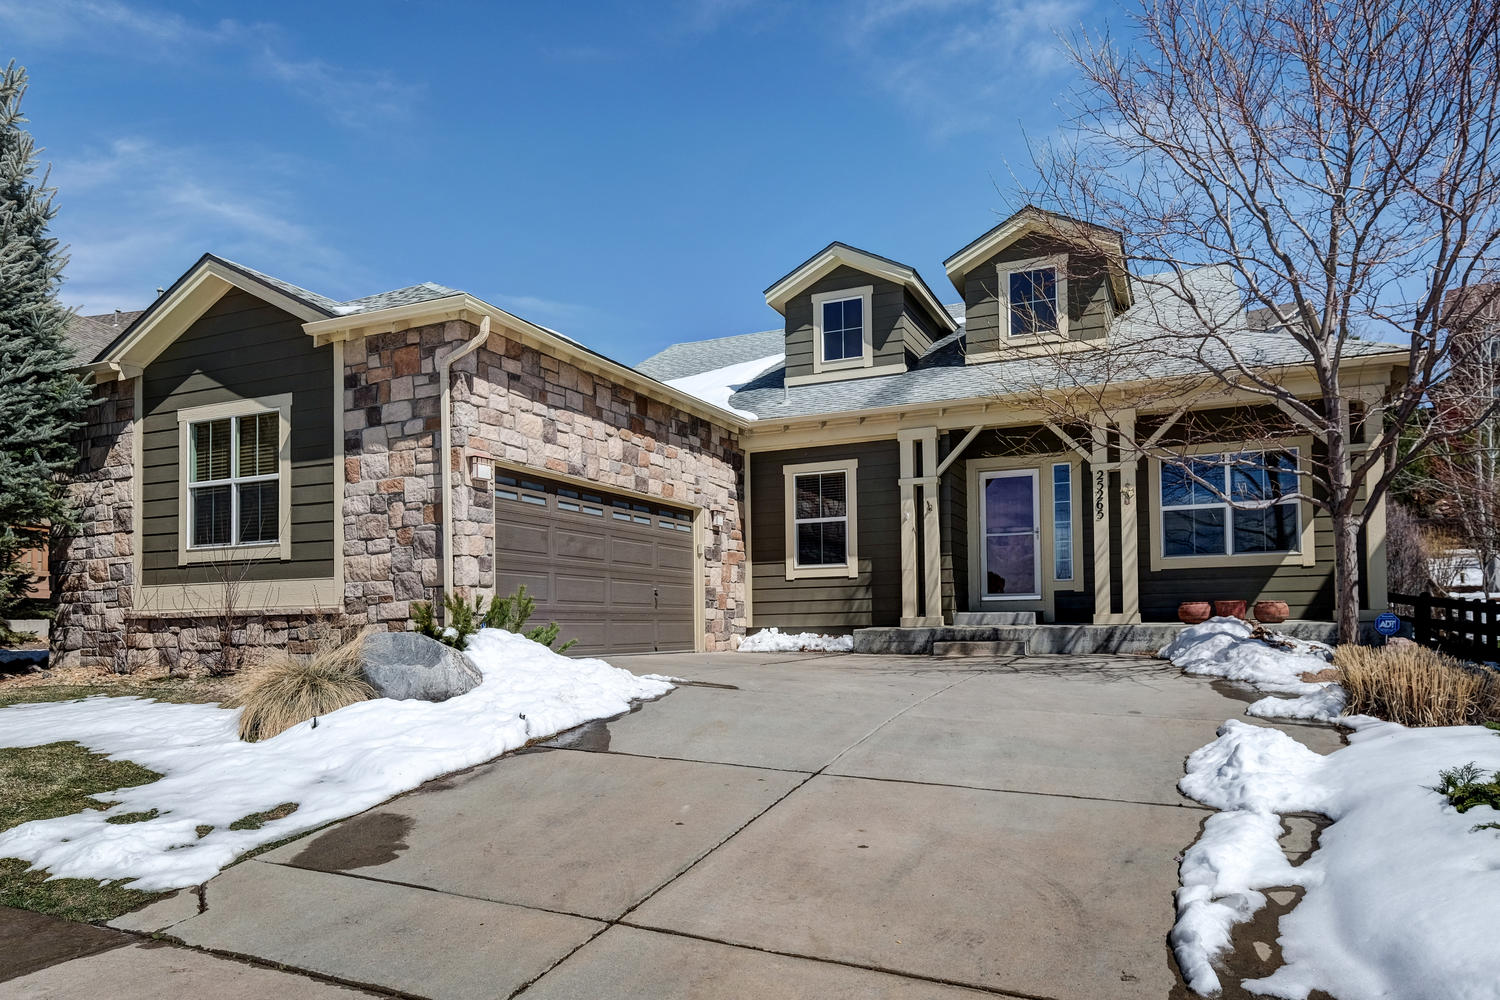 Single Family Home for Sale at Delightful Home Boasts Main Floor Living in Tallyns Reach 25265 E Park Crescent Dr Aurora, Colorado, 80016 United States